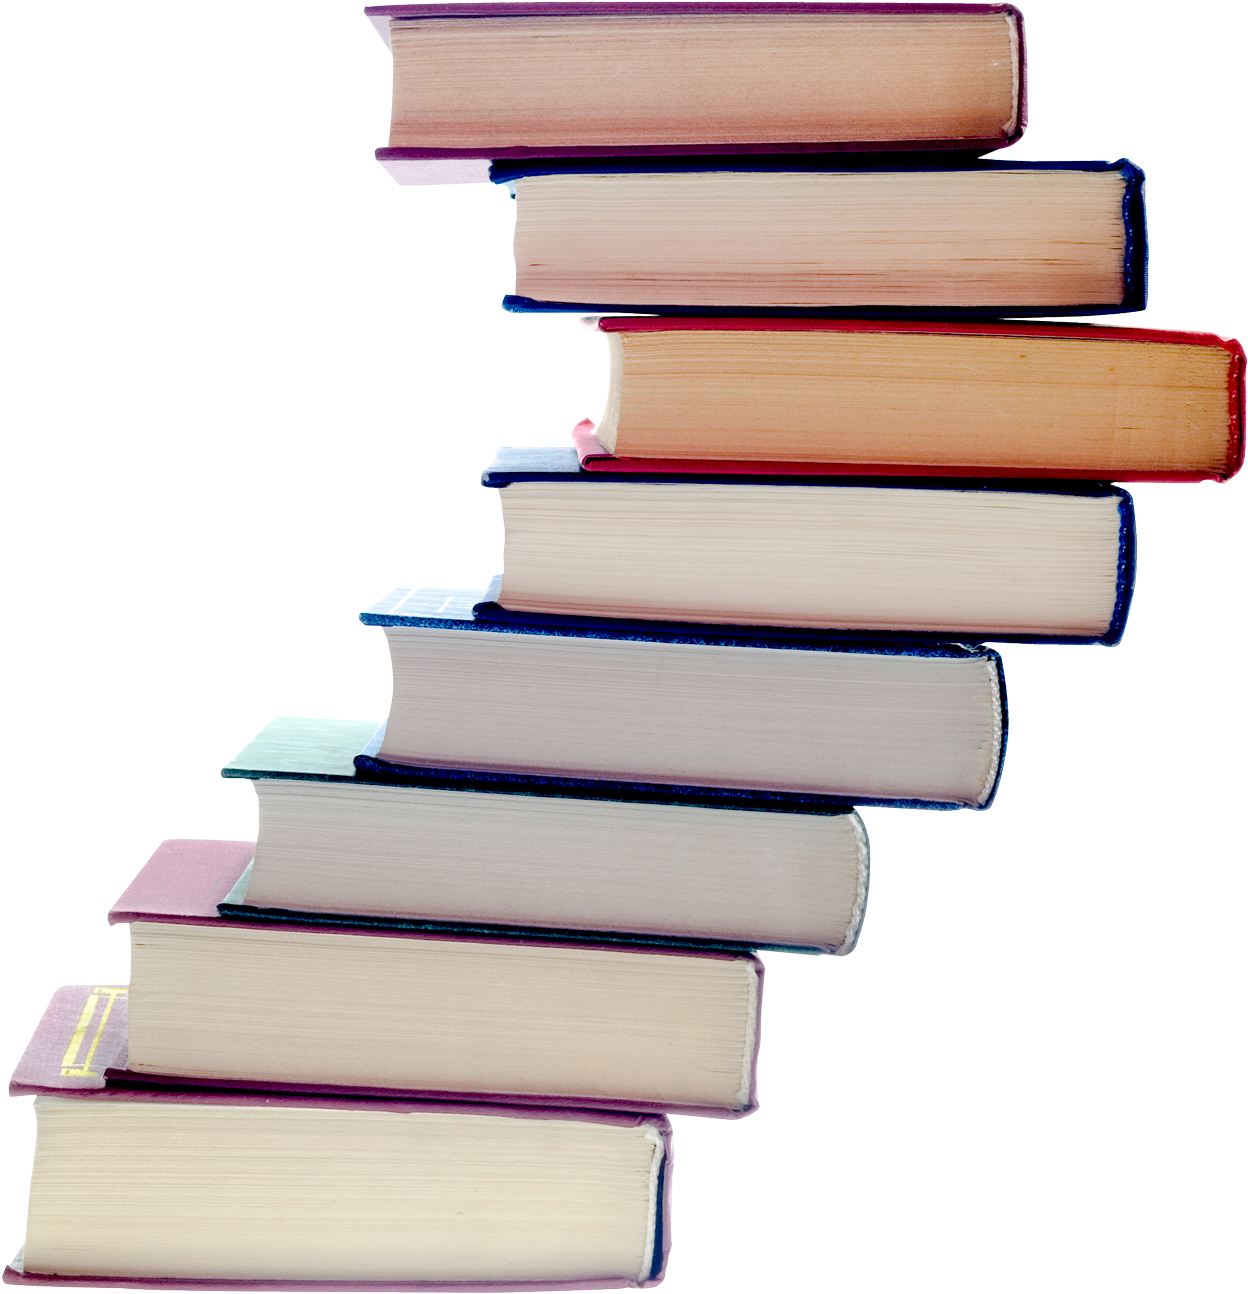 Stack Of Books Png Image 99 Png Images.